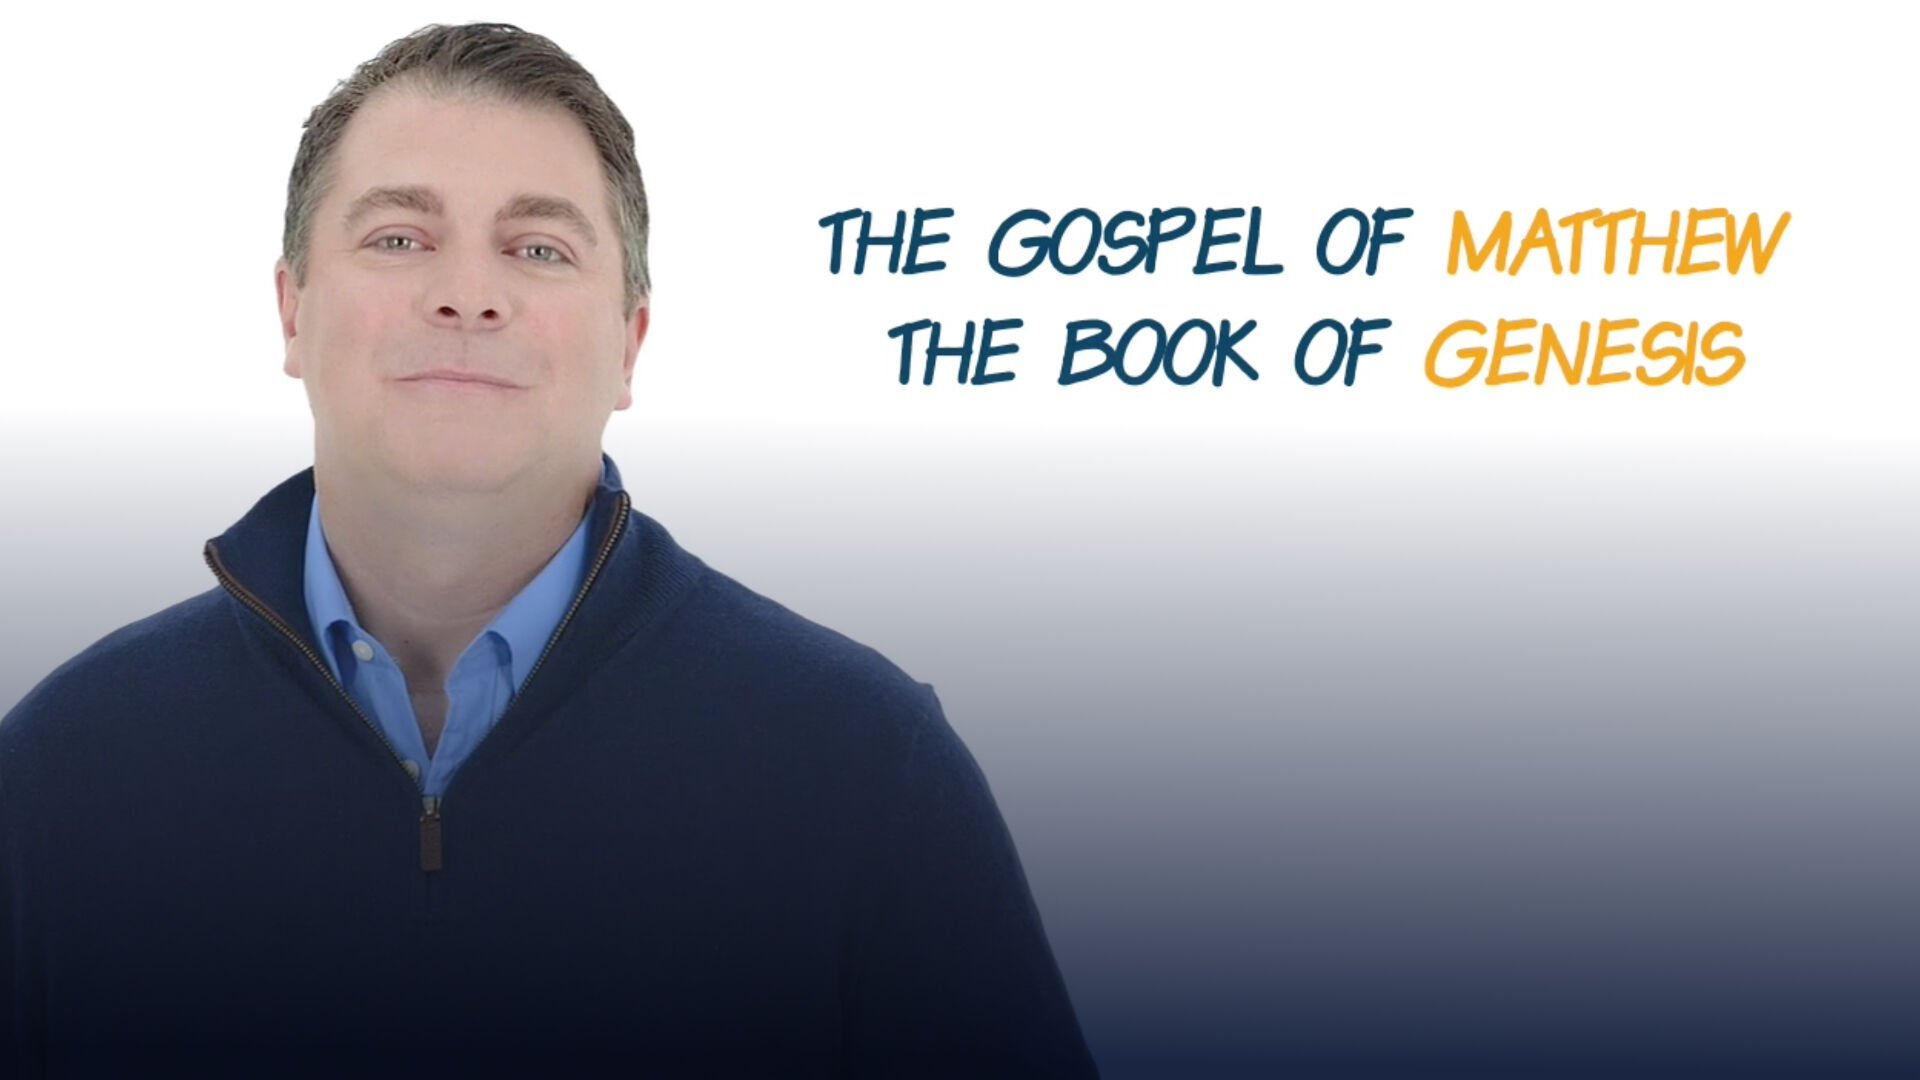 How Should I Use the Bible?